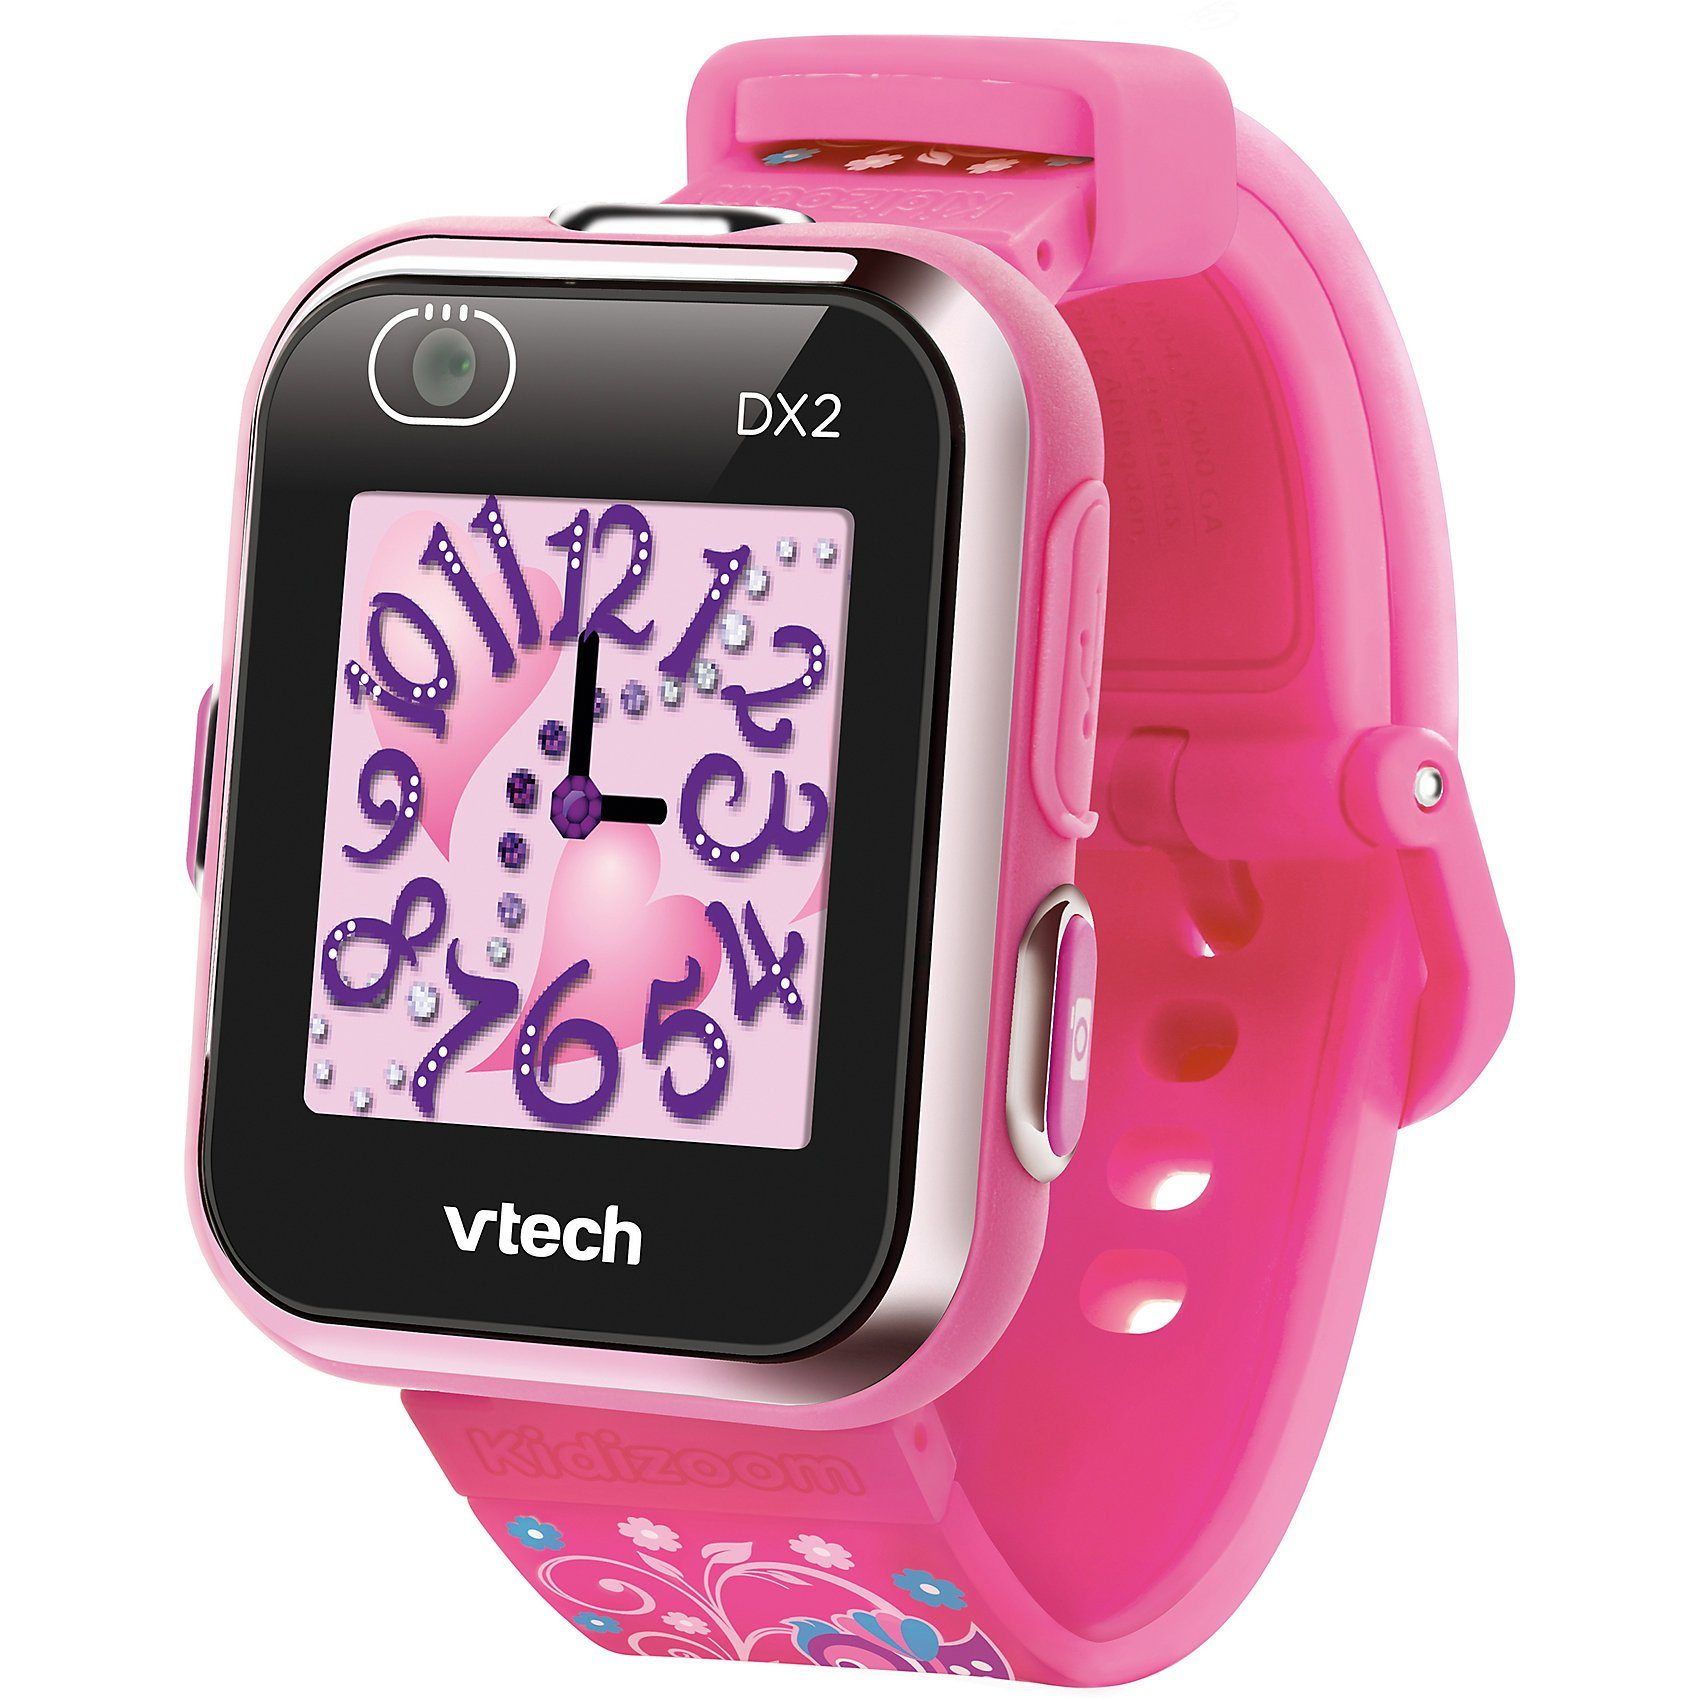 Vtech® Kidizoom Smart Watch DX2 pink version with flowers